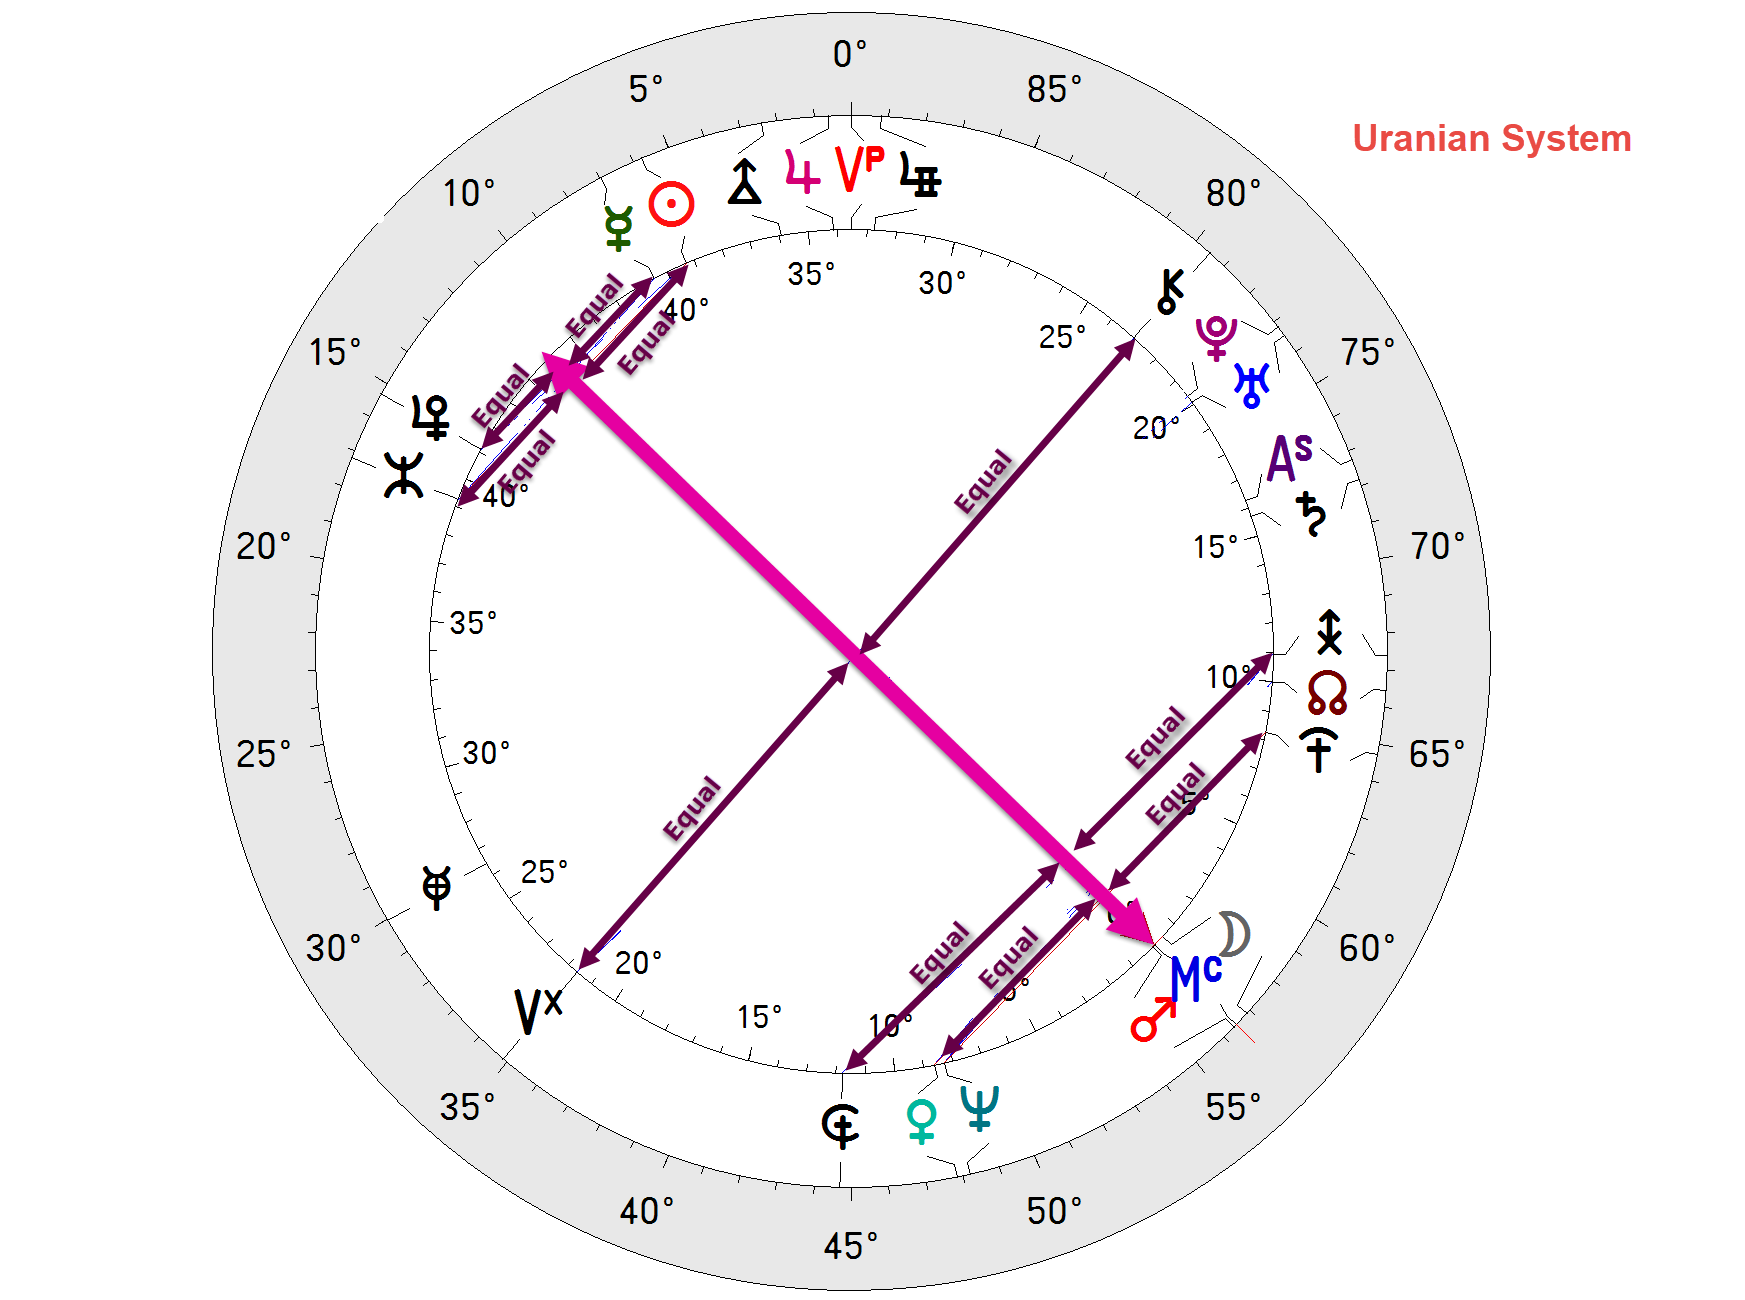 The Uranian 90 degree dial and midpoint structures